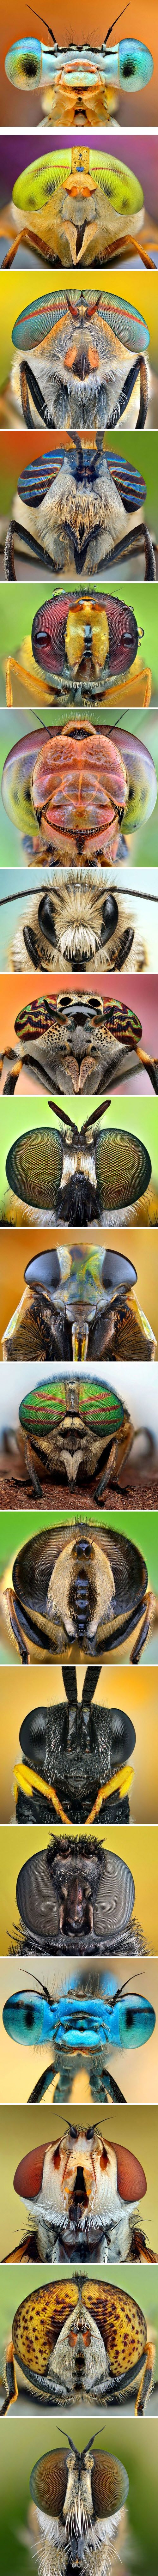 IPhotographer Ireneusz Irass Waledzik - collection of fascinating facet eyes of dragonflies, bees and flies.